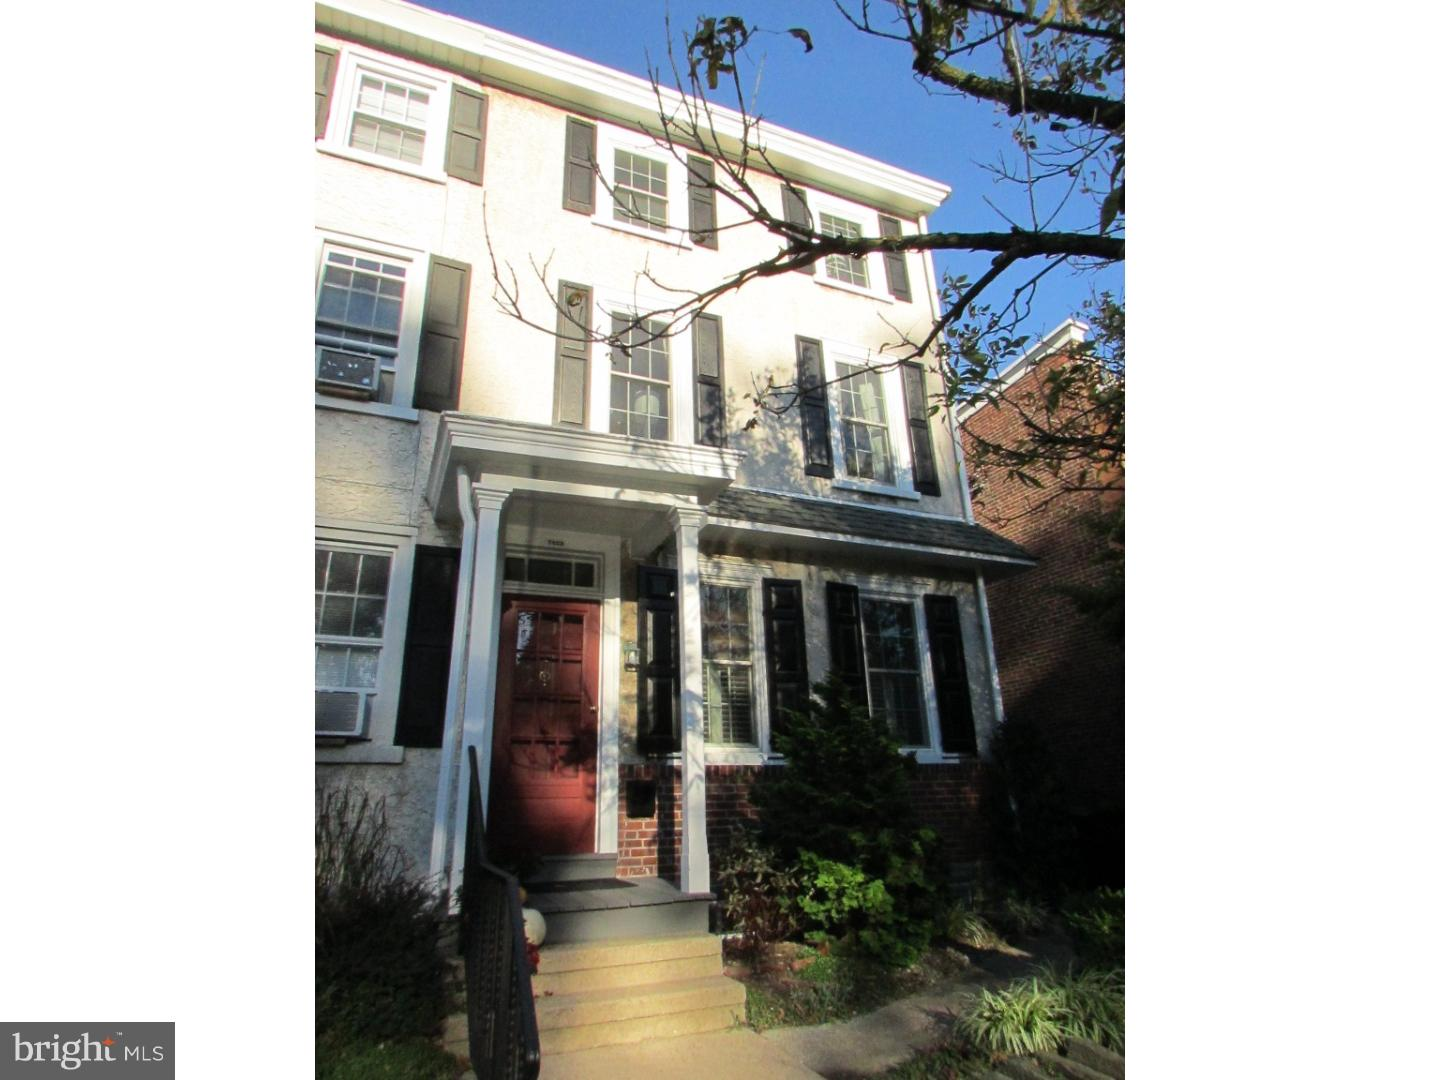 7823 Germantown Avenue Philadelphia, PA 19118